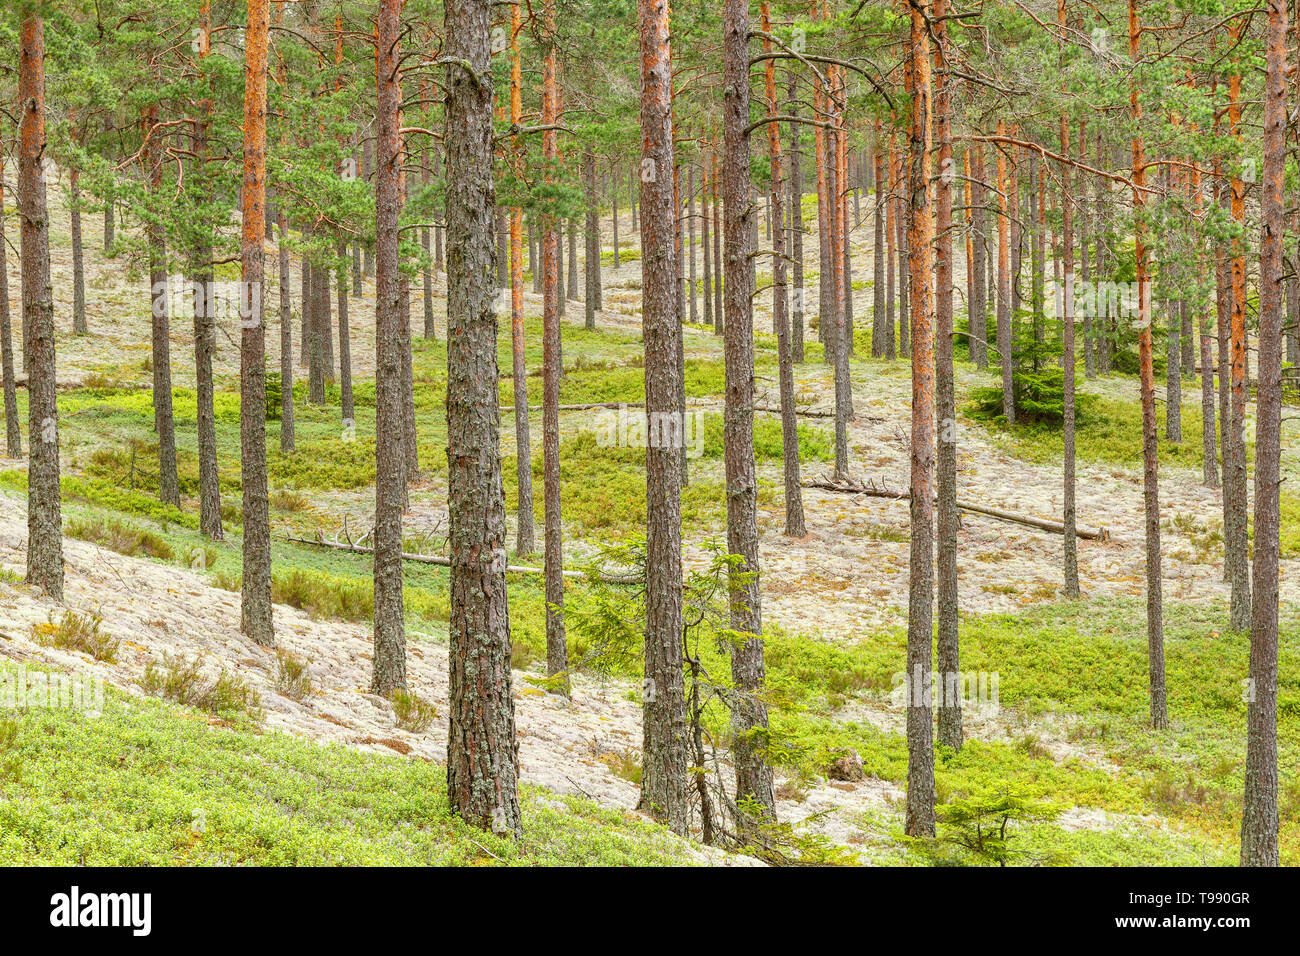 Pine woodland in the wilderness - Stock Image